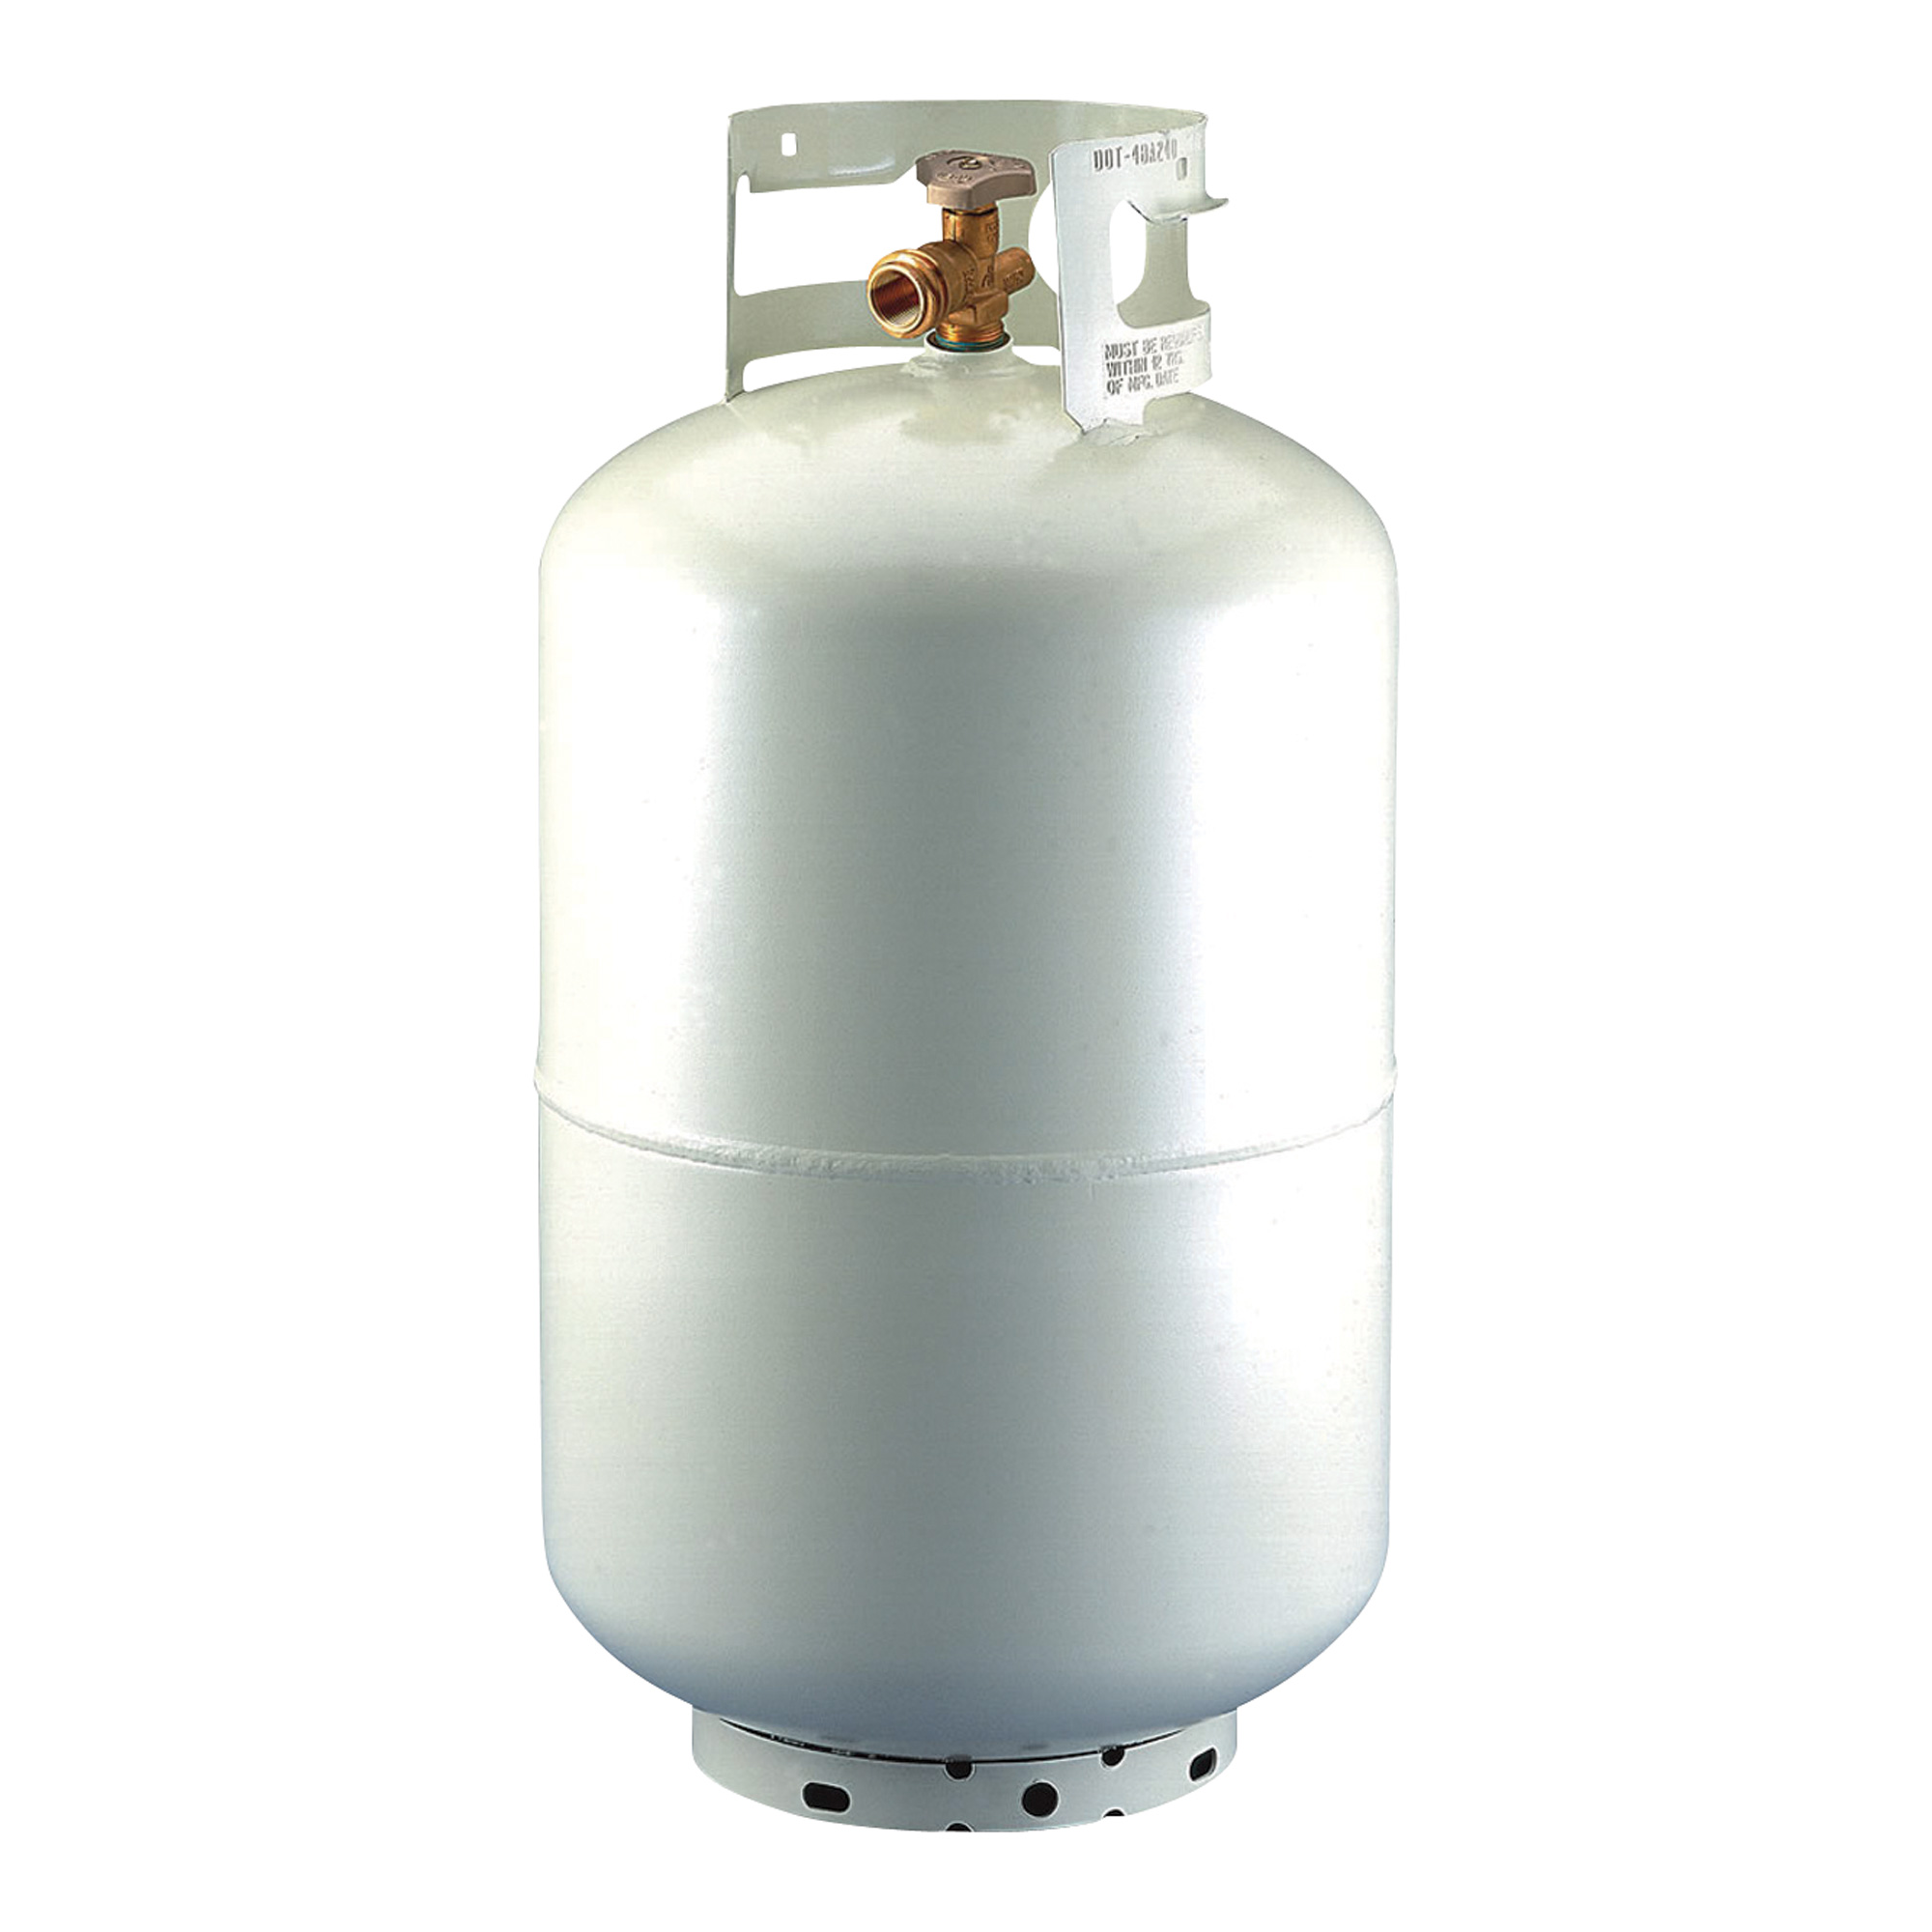 Propane tanks 9 Gallon